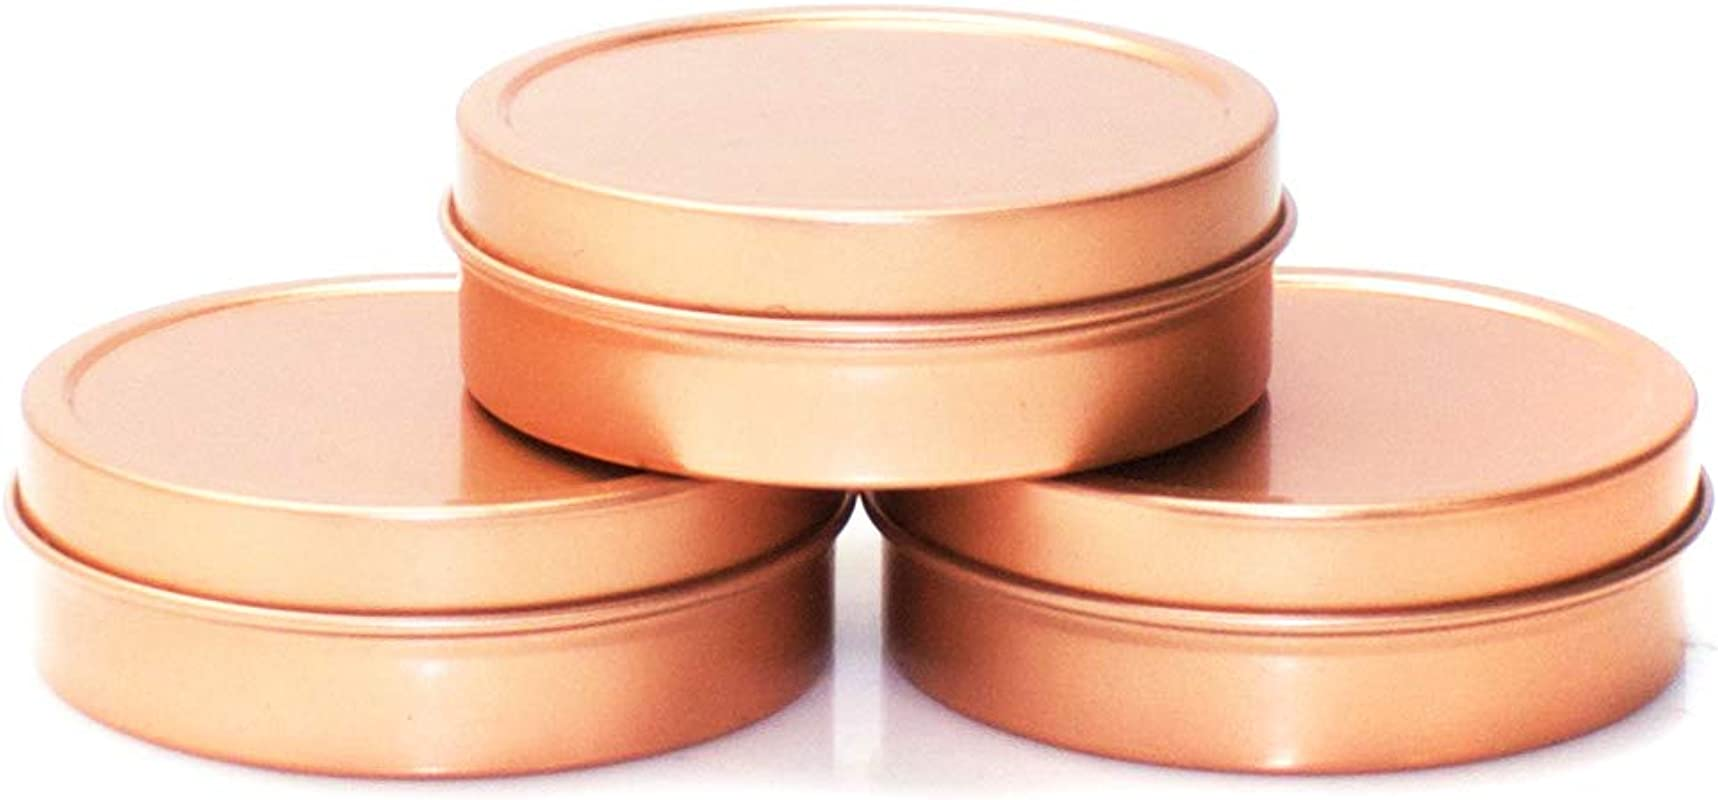 Mimi Pack 2 Oz Tins 24 Pack Of Shallow Slip Top Round Tin Containers With Lids For Cosmetics Party Favors And Gifts Rose Gold